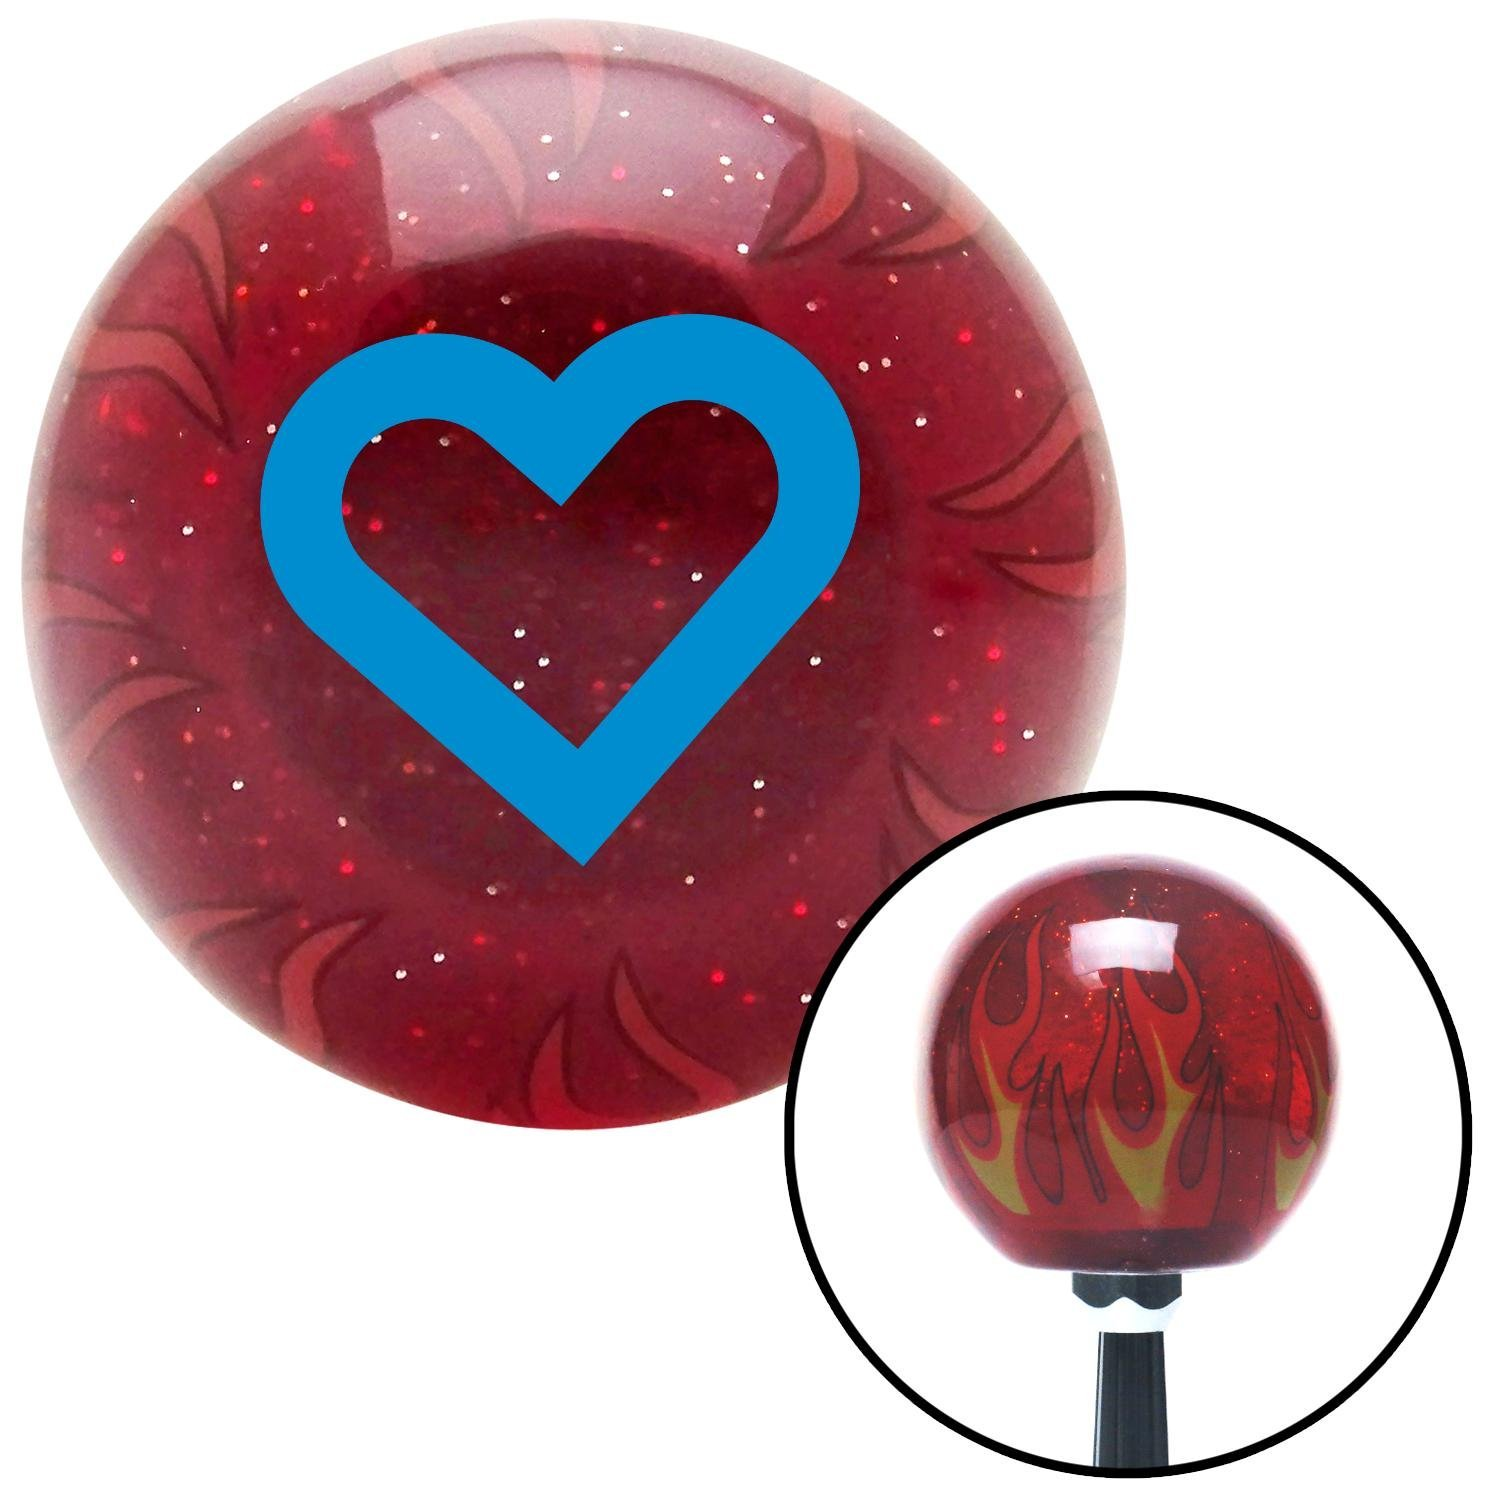 Blue Fat Outlined Heart American Shifter 237066 Red Flame Metal Flake Shift Knob with M16 x 1.5 Insert